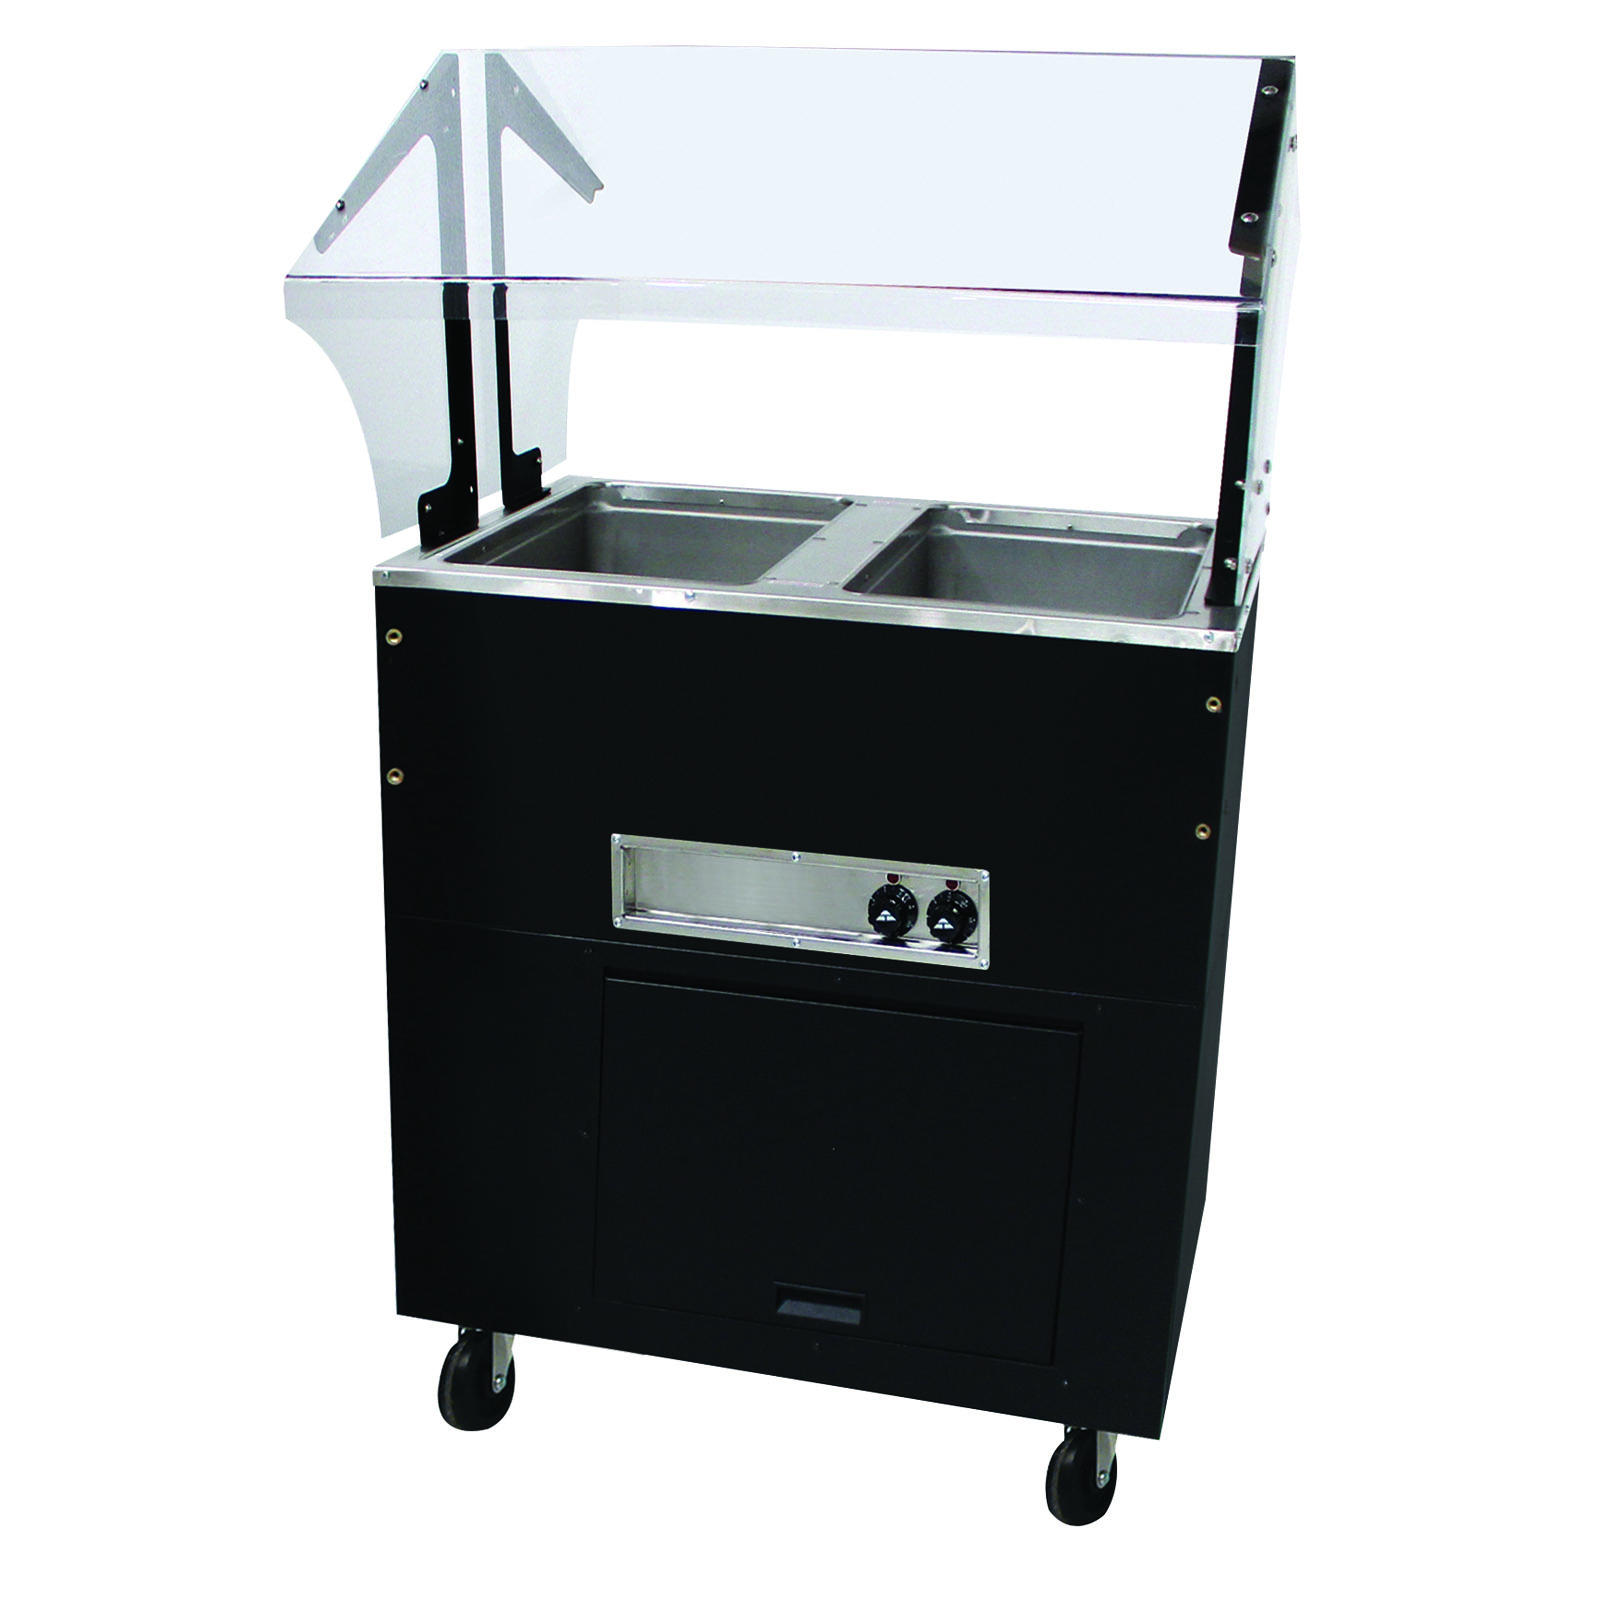 Advance tabco bsw2 240 b sb portable hot for Sideboard porta